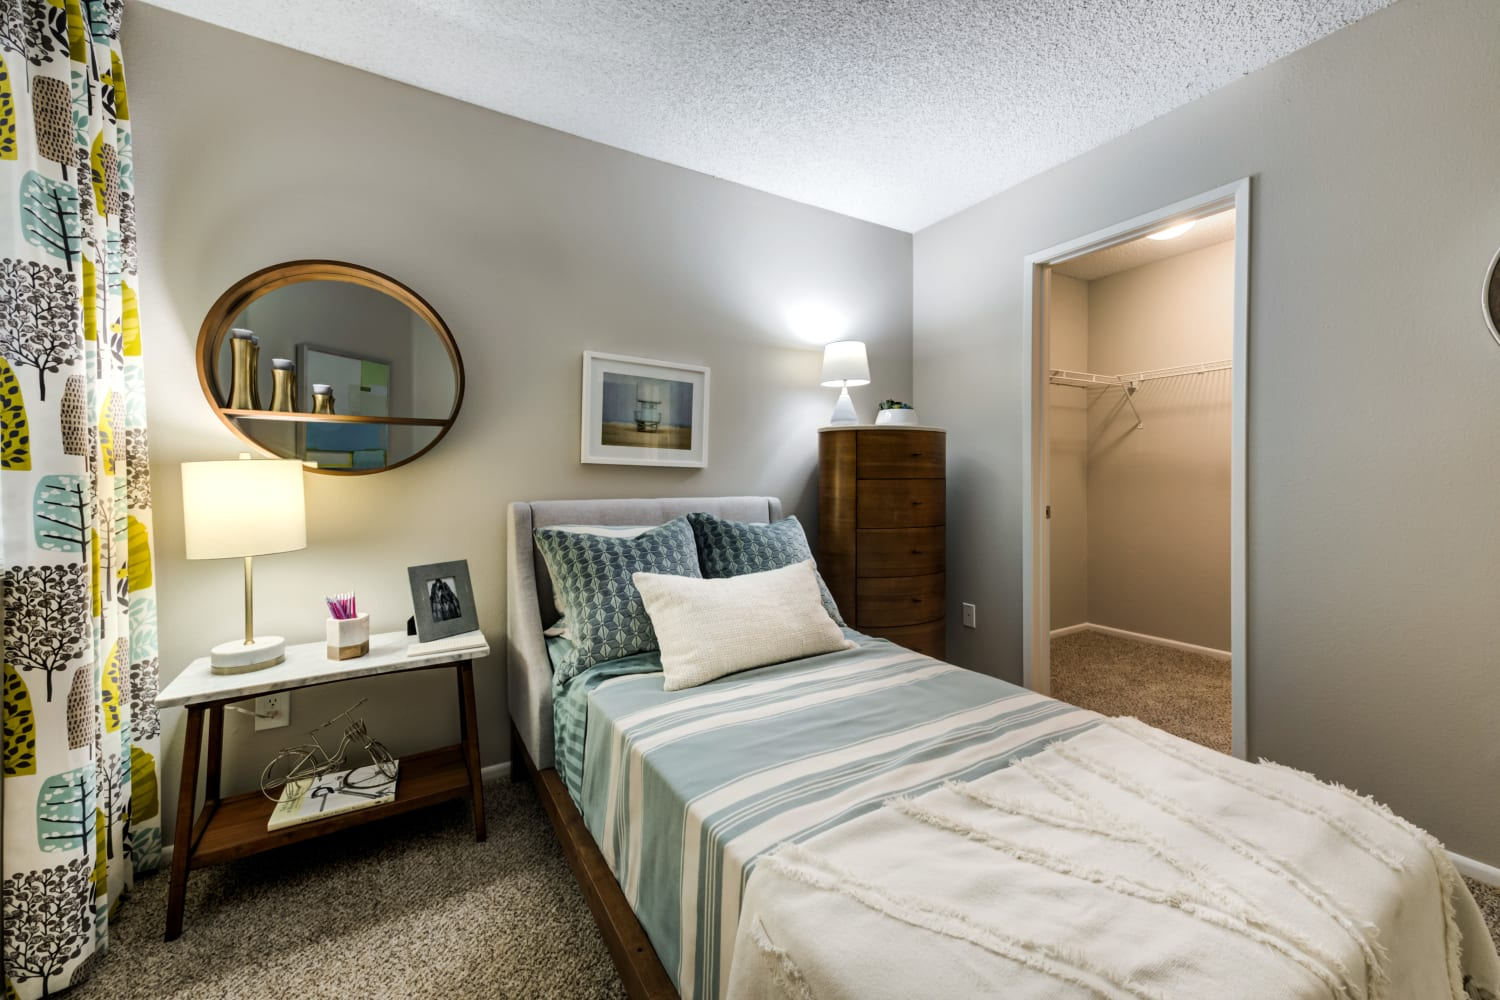 Bedroom at Sierra Heights Apartments in Rancho Cucamonga, California